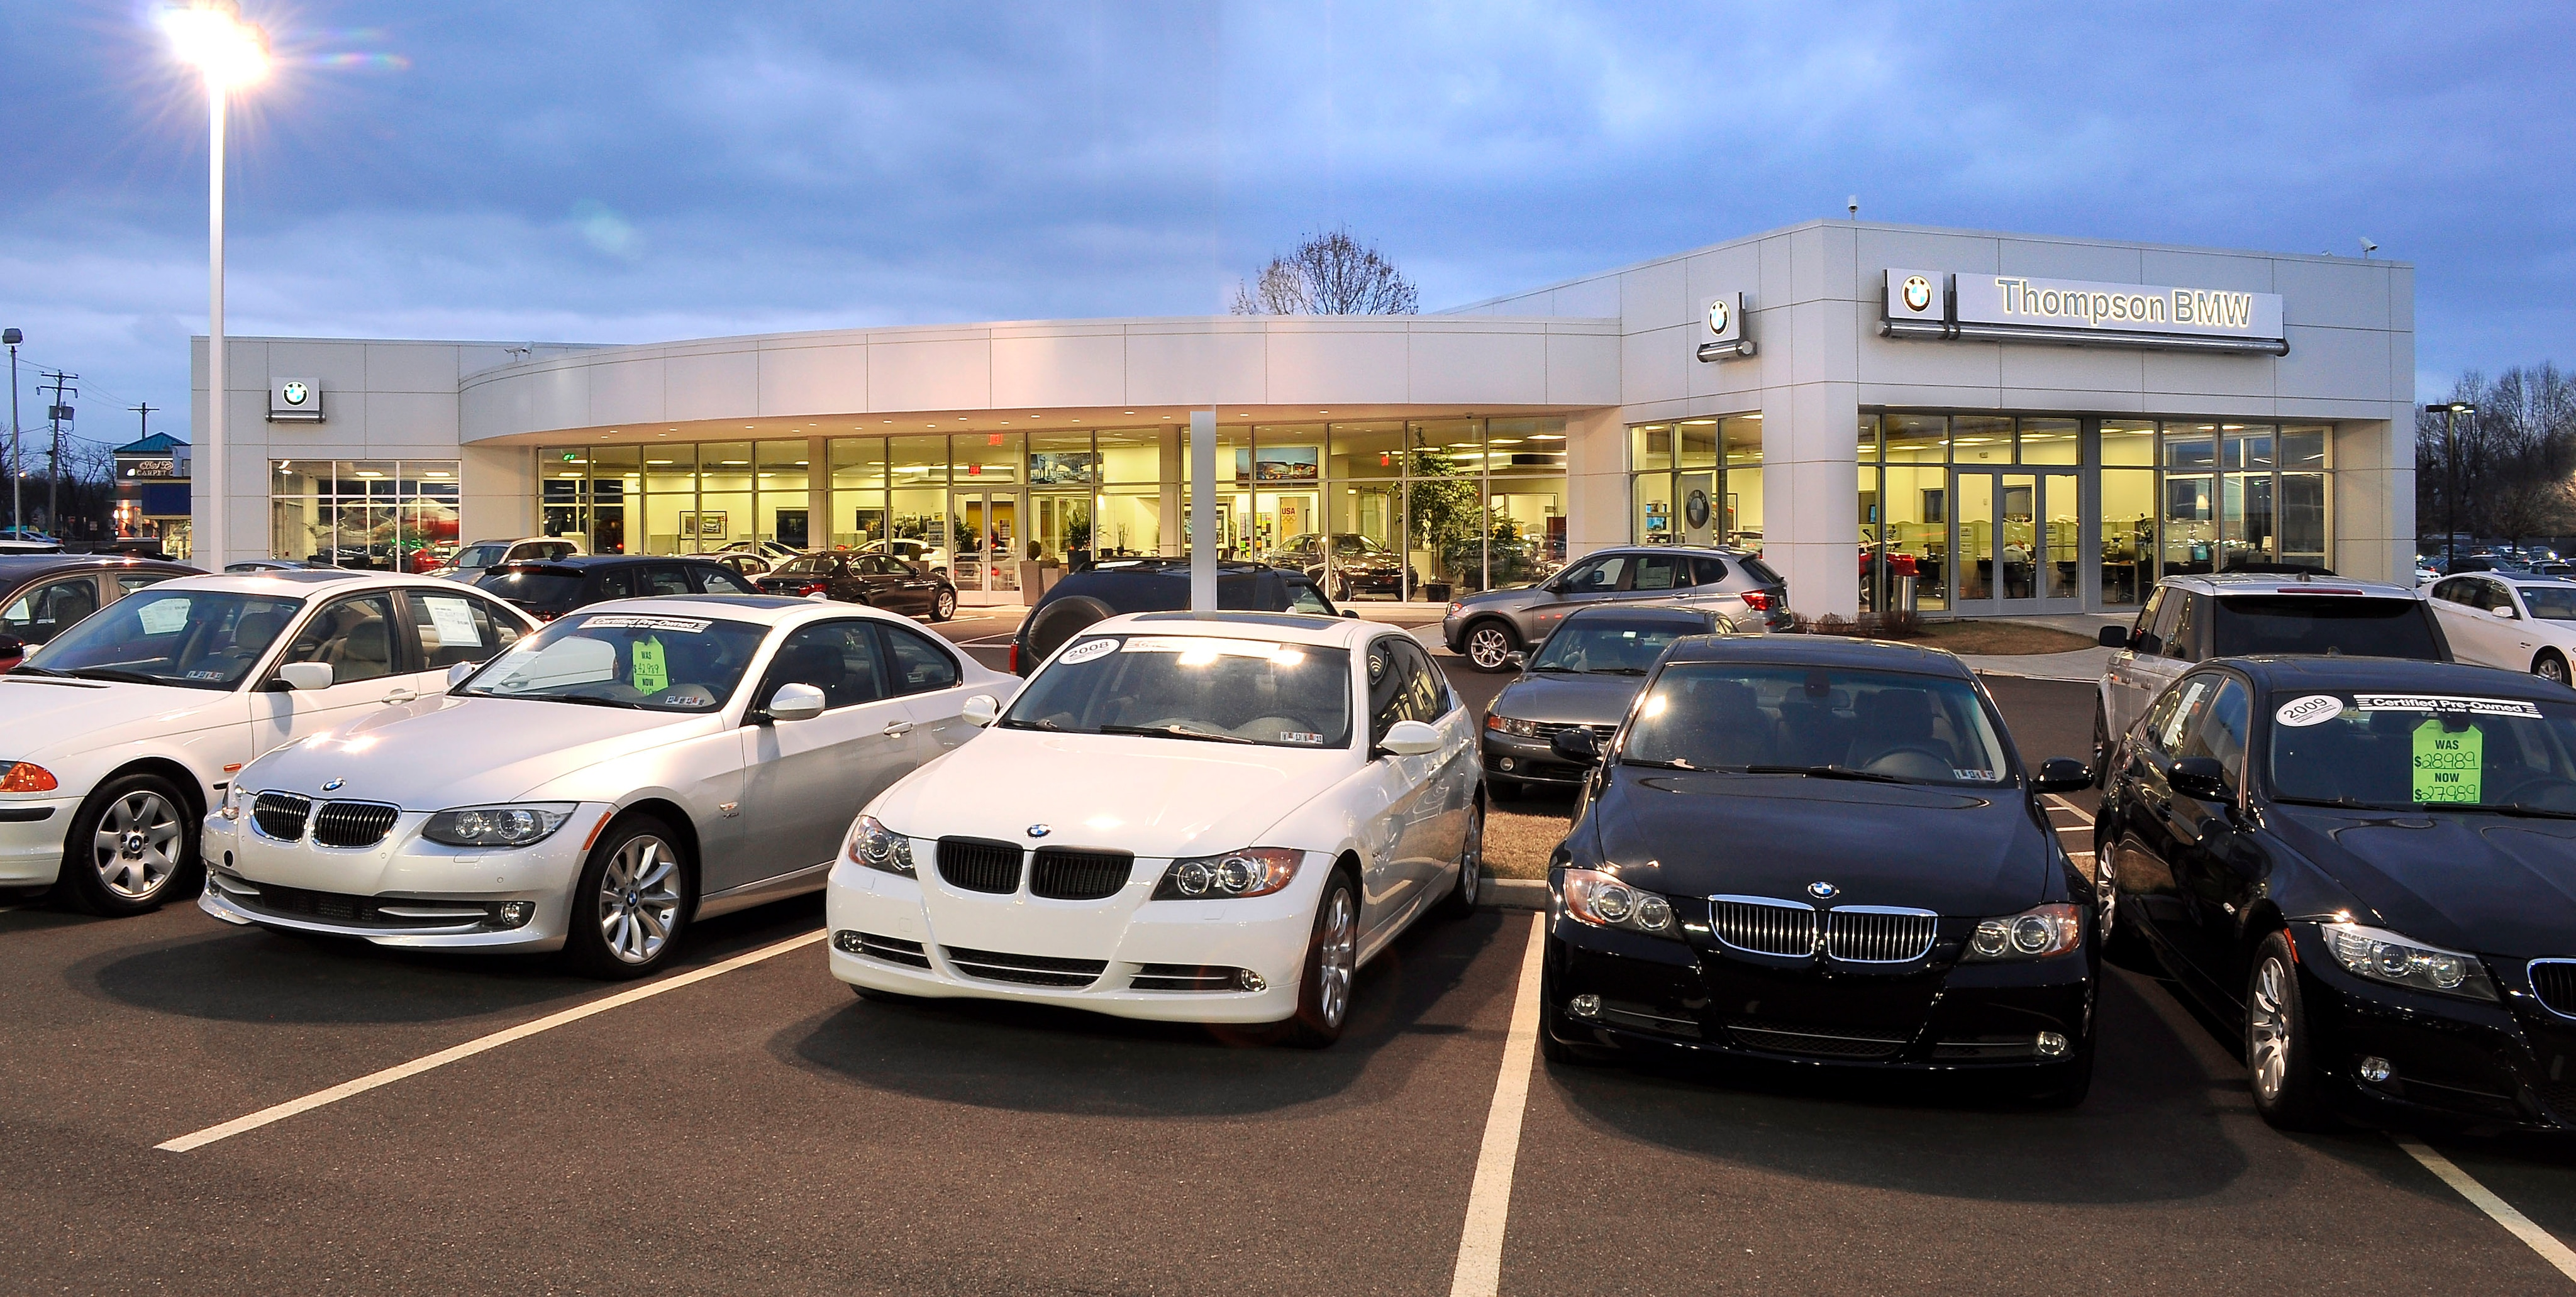 About Thompson Bmw In Doylestown Pa